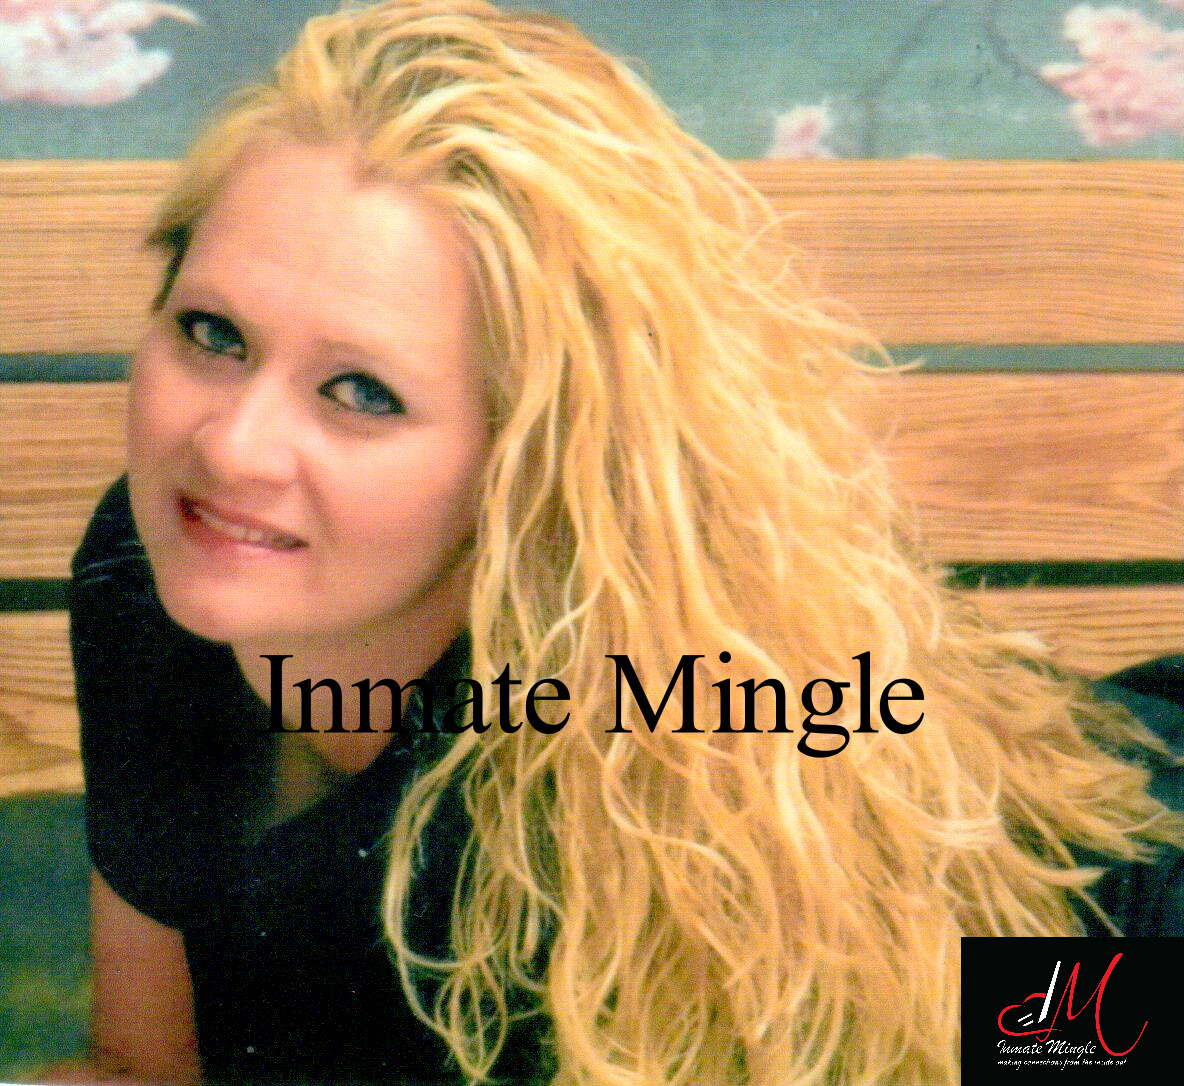 Female inmate dating website